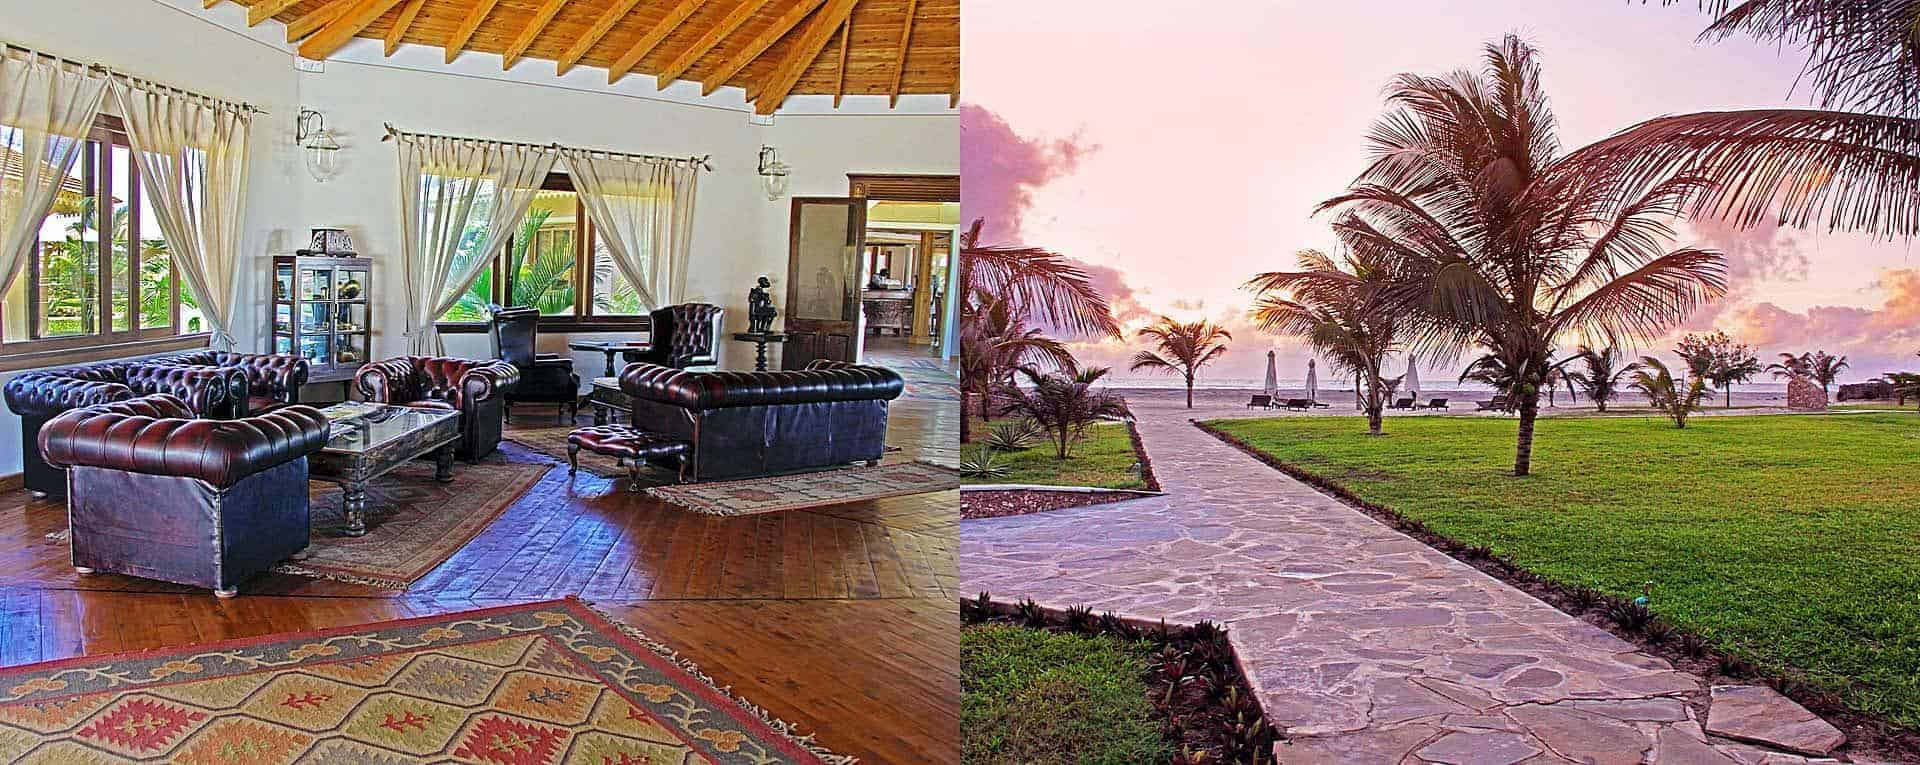 Ocean Beach Resort And Spa photos, images & pictures for ocean beach resort & spa in malindi